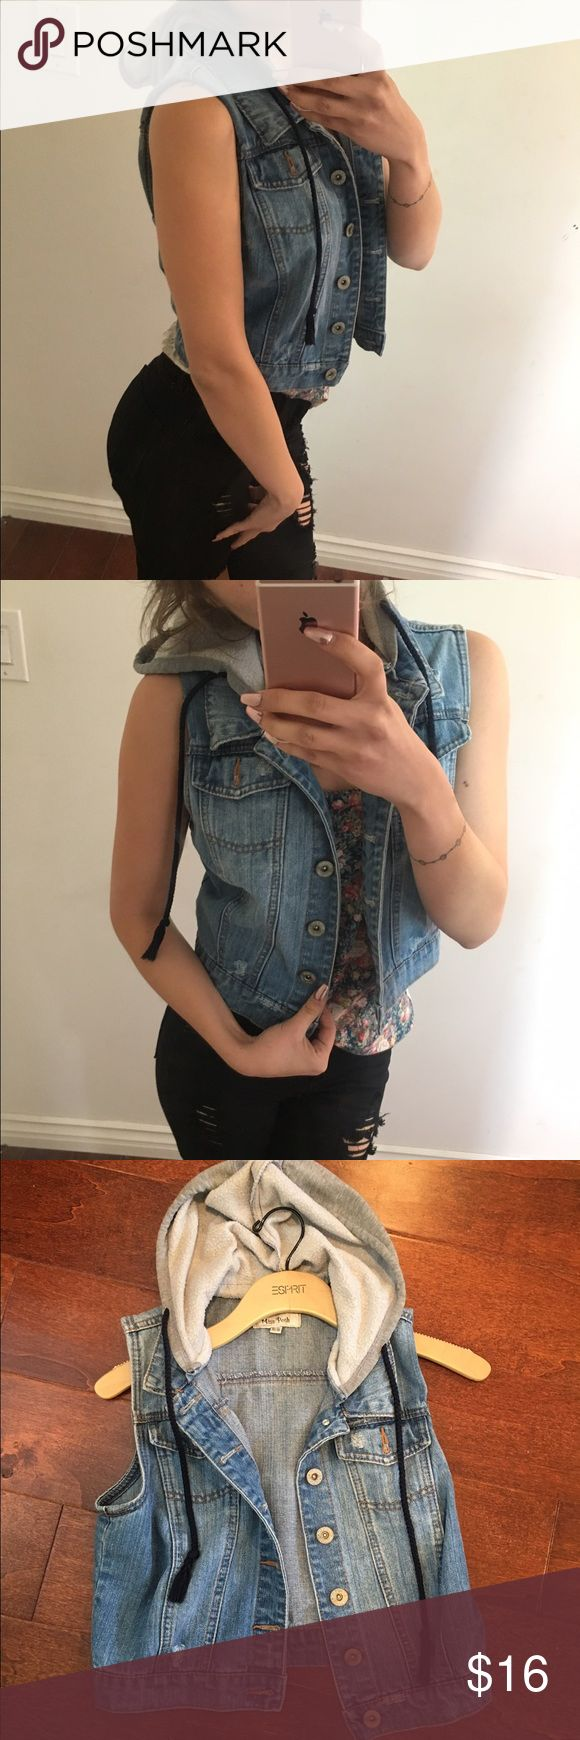 Sleeveless hooded denim jacket NO THIS IS NOT A FREE PEOPLE BRAND. THE BRAND WAS JUST USED TO GET THIS SALE OUT THERE! Free People Jackets & Coats Jean Jackets